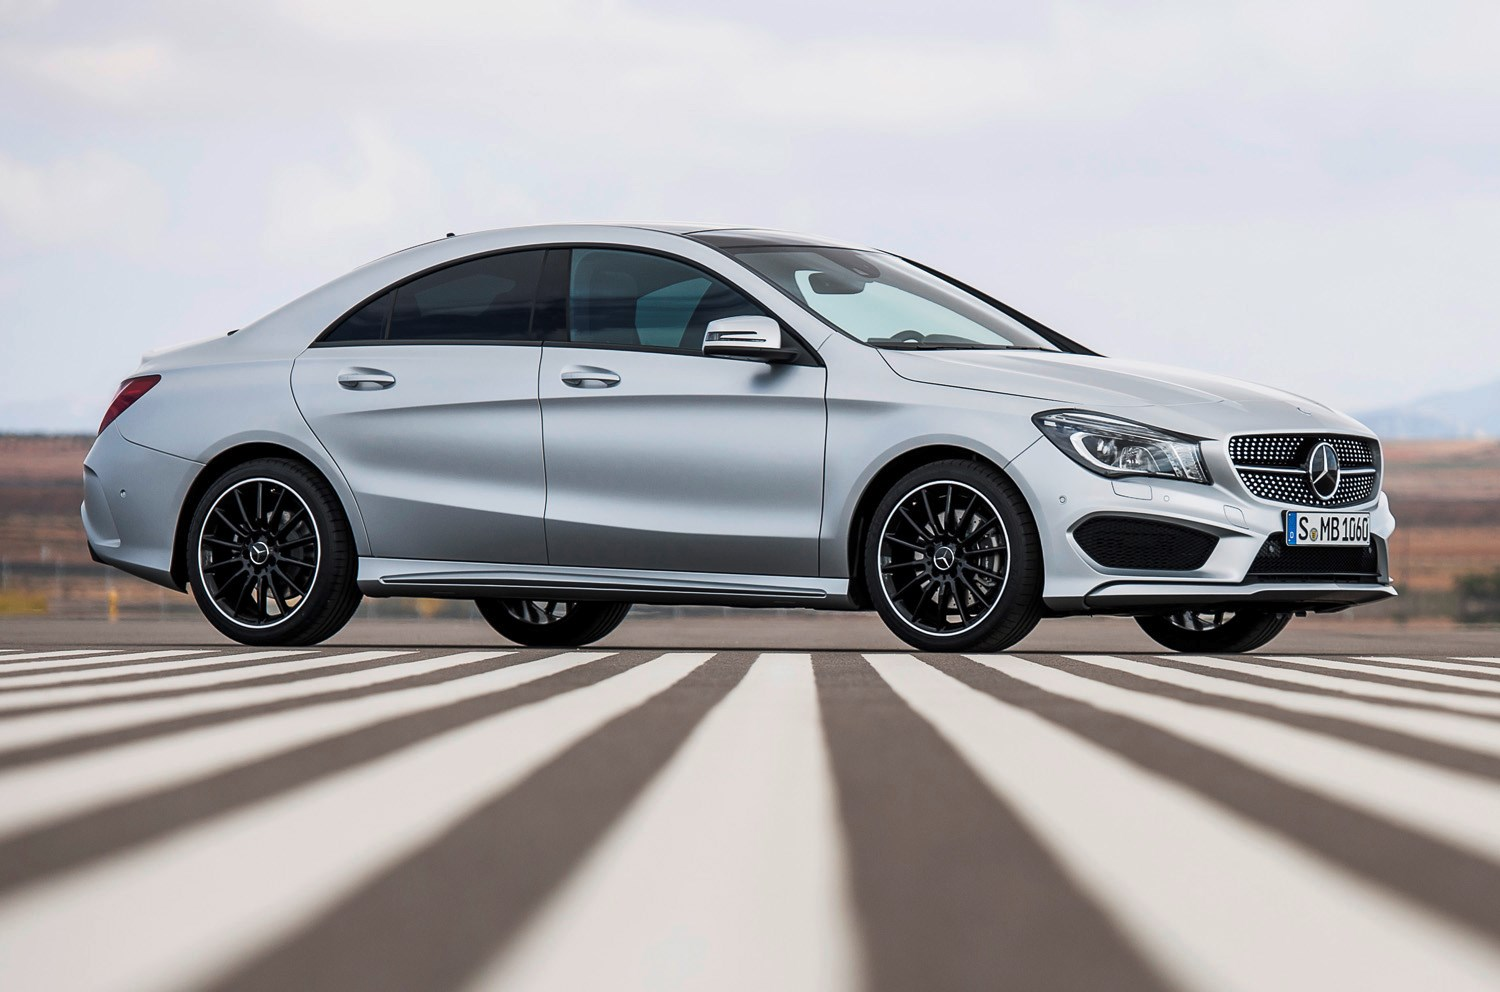 All Types 2013 mercedes cla : Mercedes-Benz CLA-Class Coupe (2013 - ) Photos | Parkers